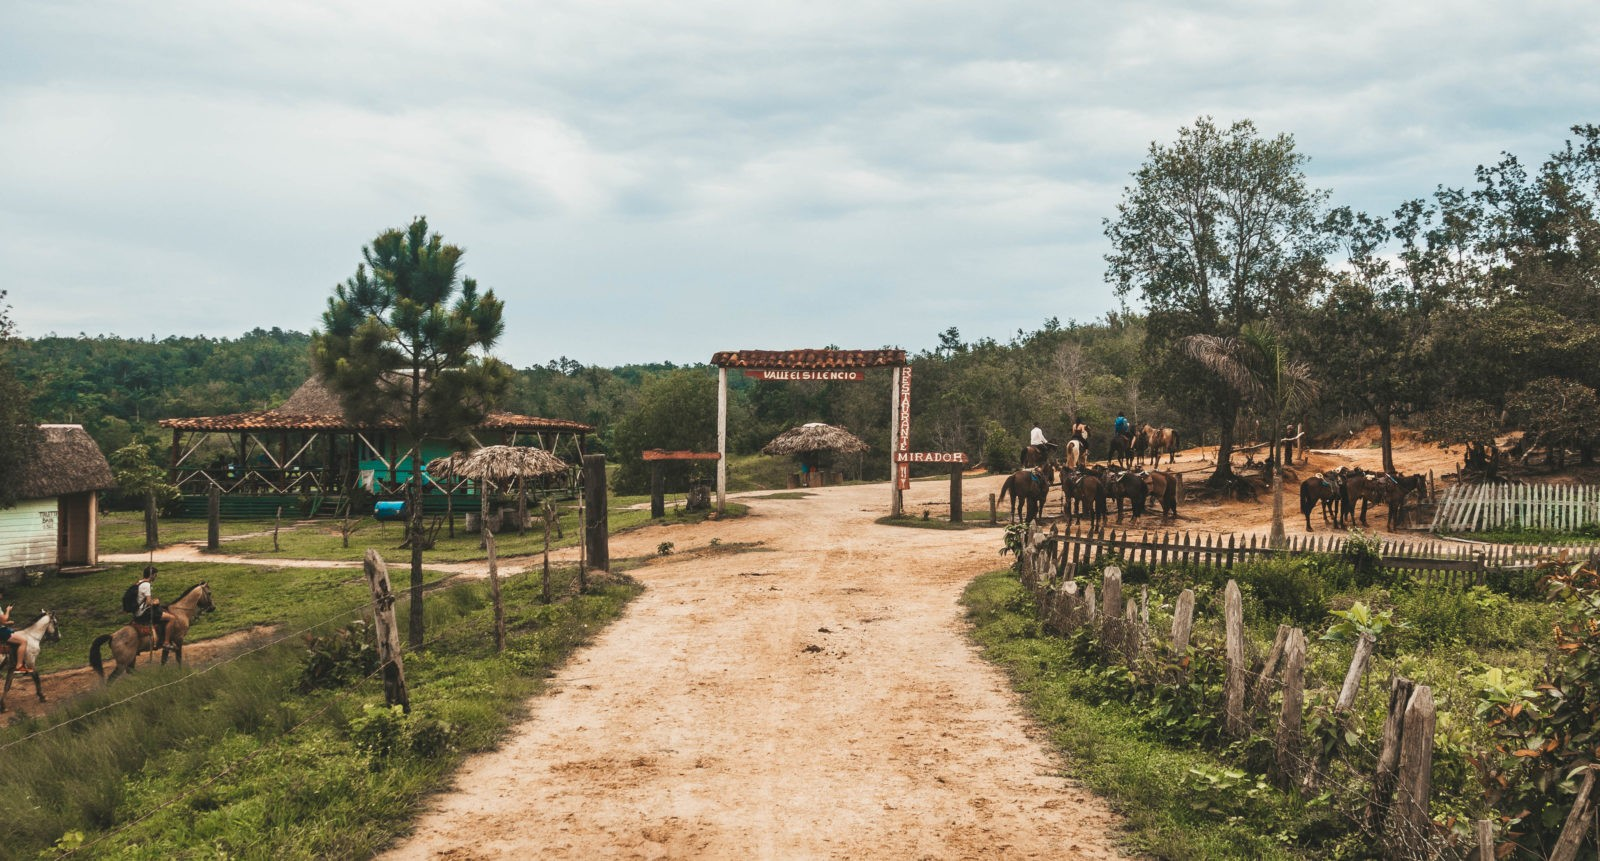 How to Spend 48 hours in Viñales